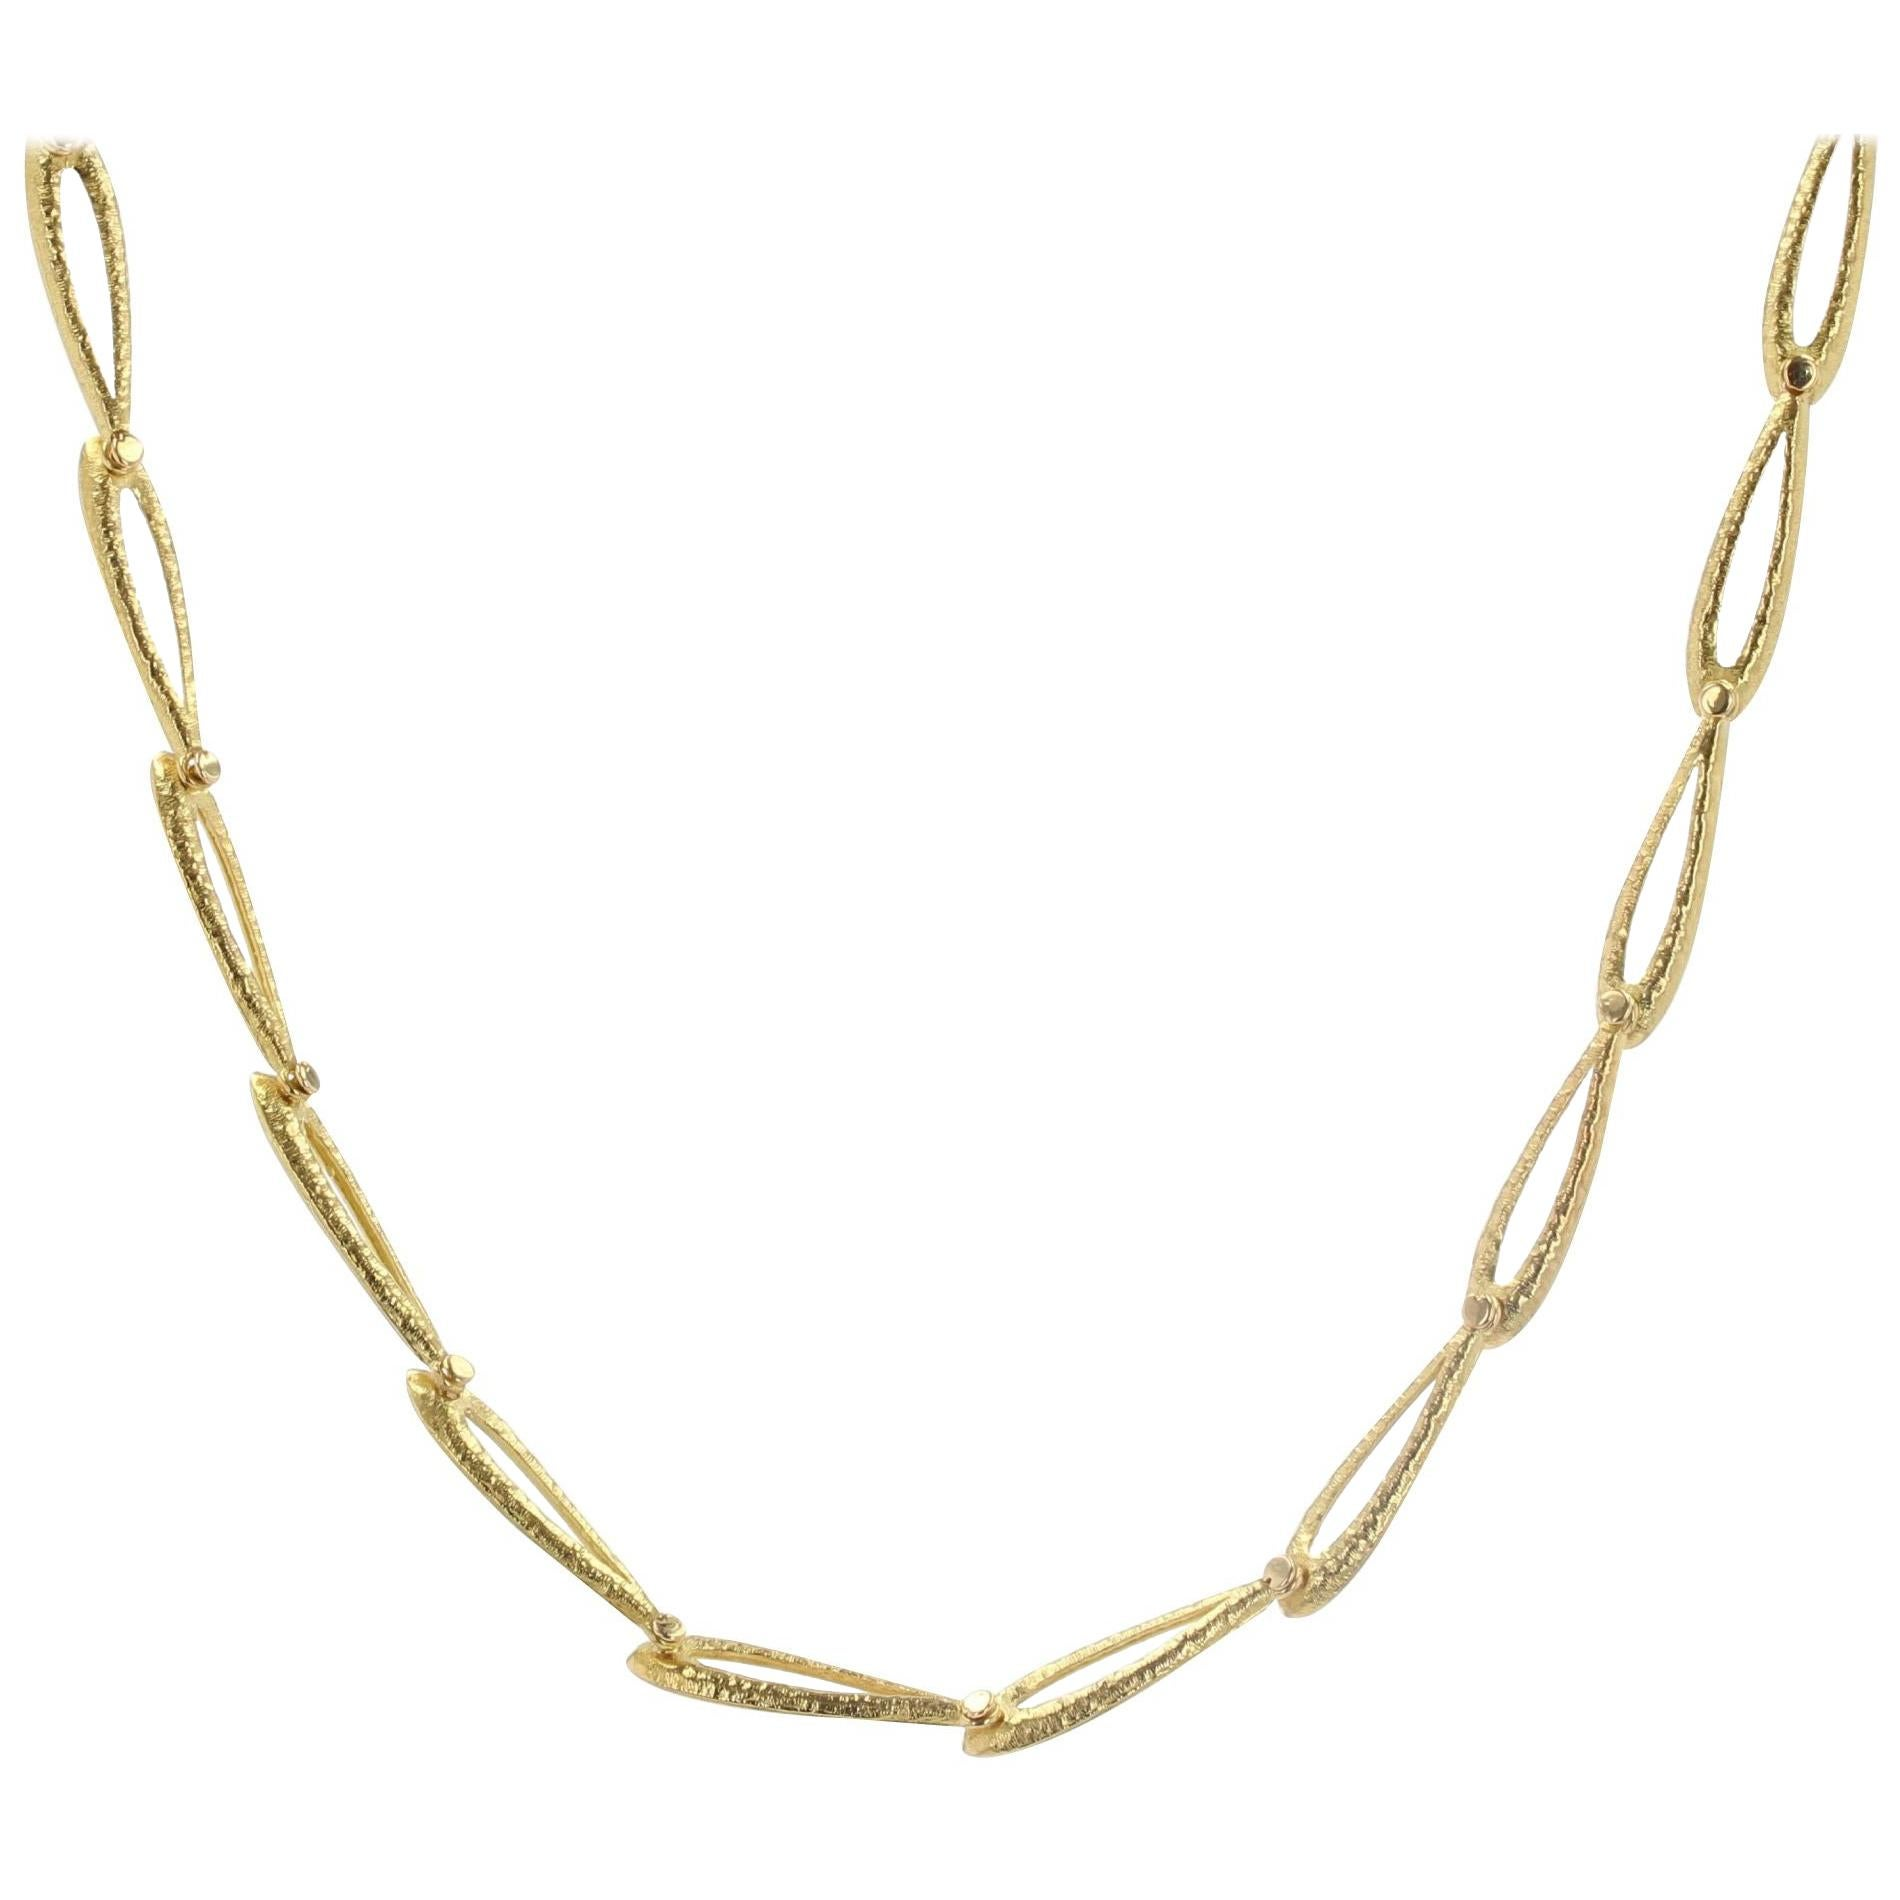 1960s French 18 Karat Yellow Gold Oatmeal Mesh Necklace